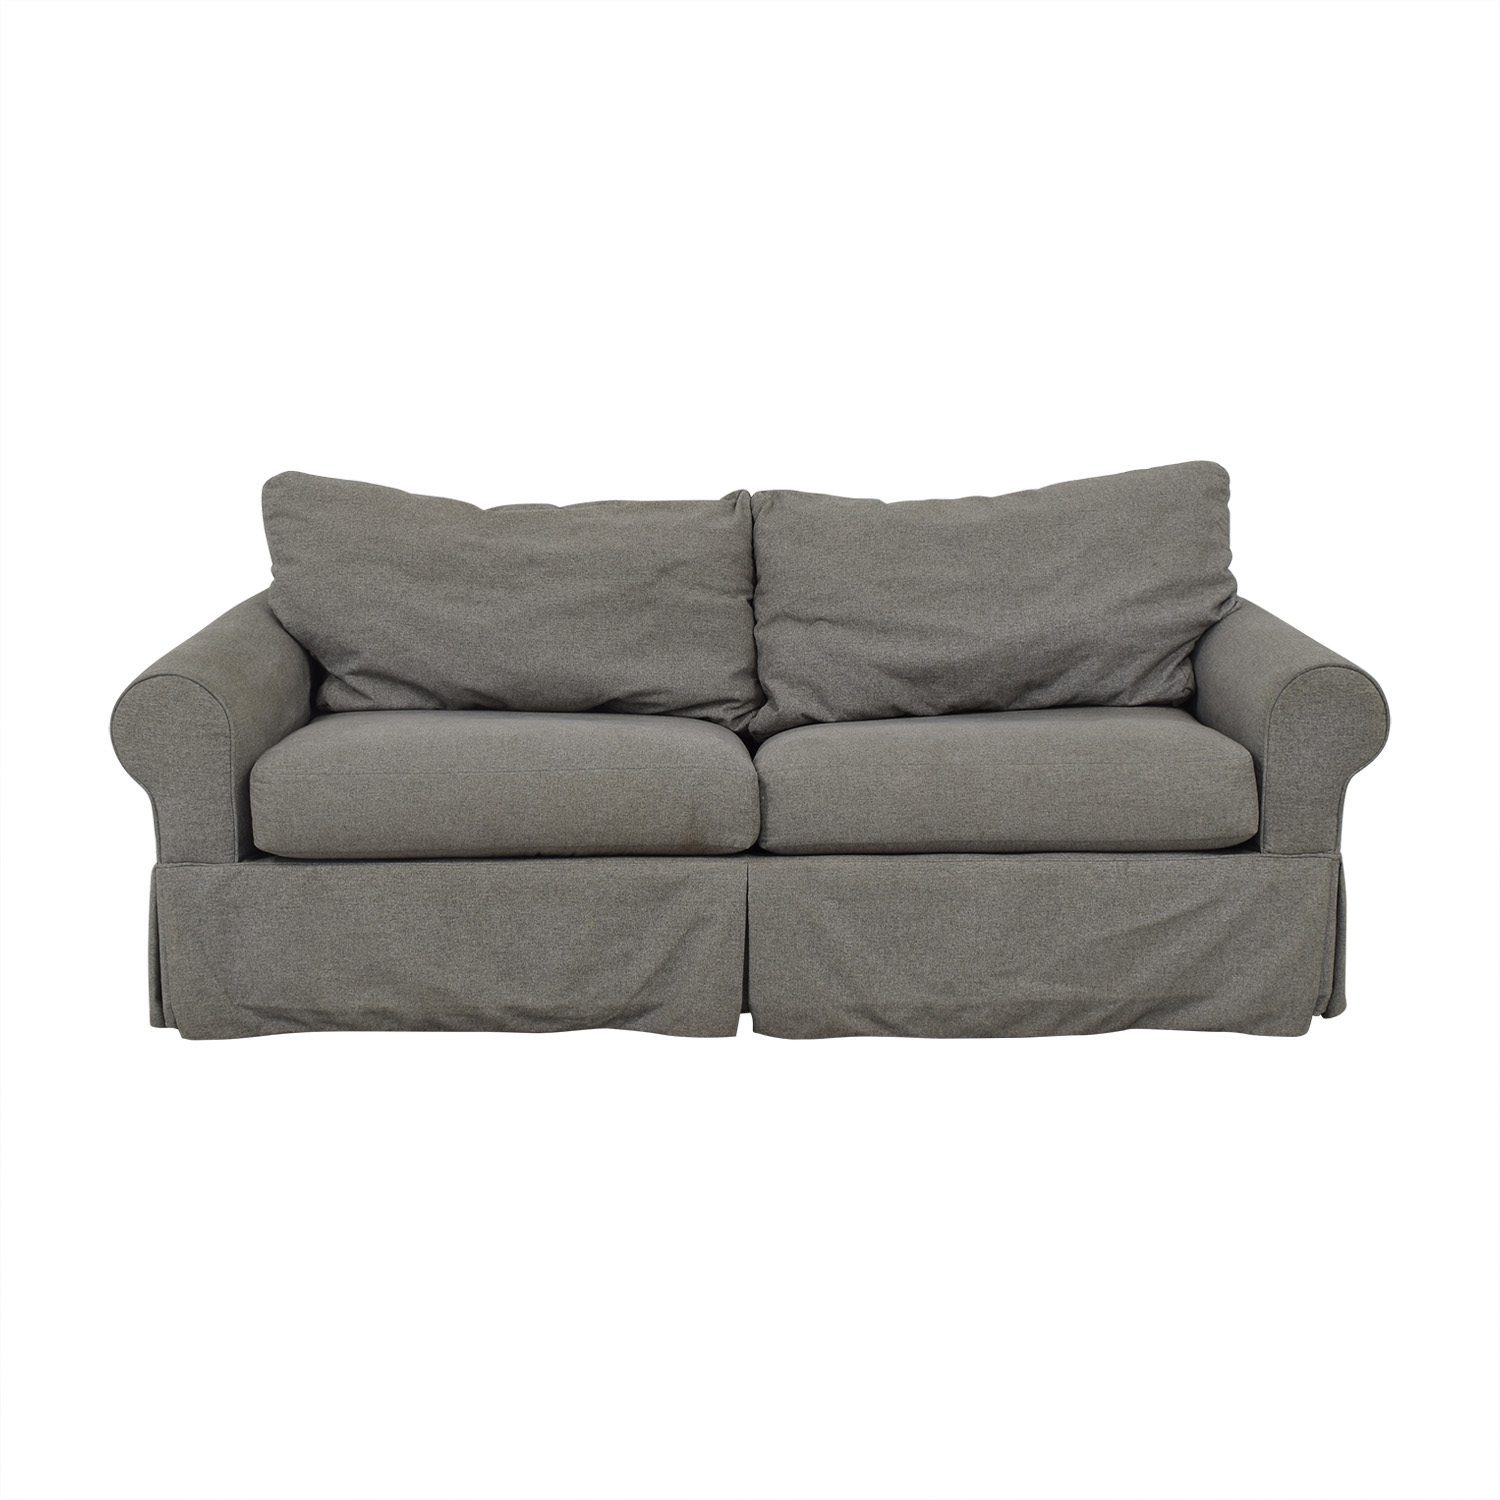 La-Z-Boy Full Sleeper Sofa / Sofas